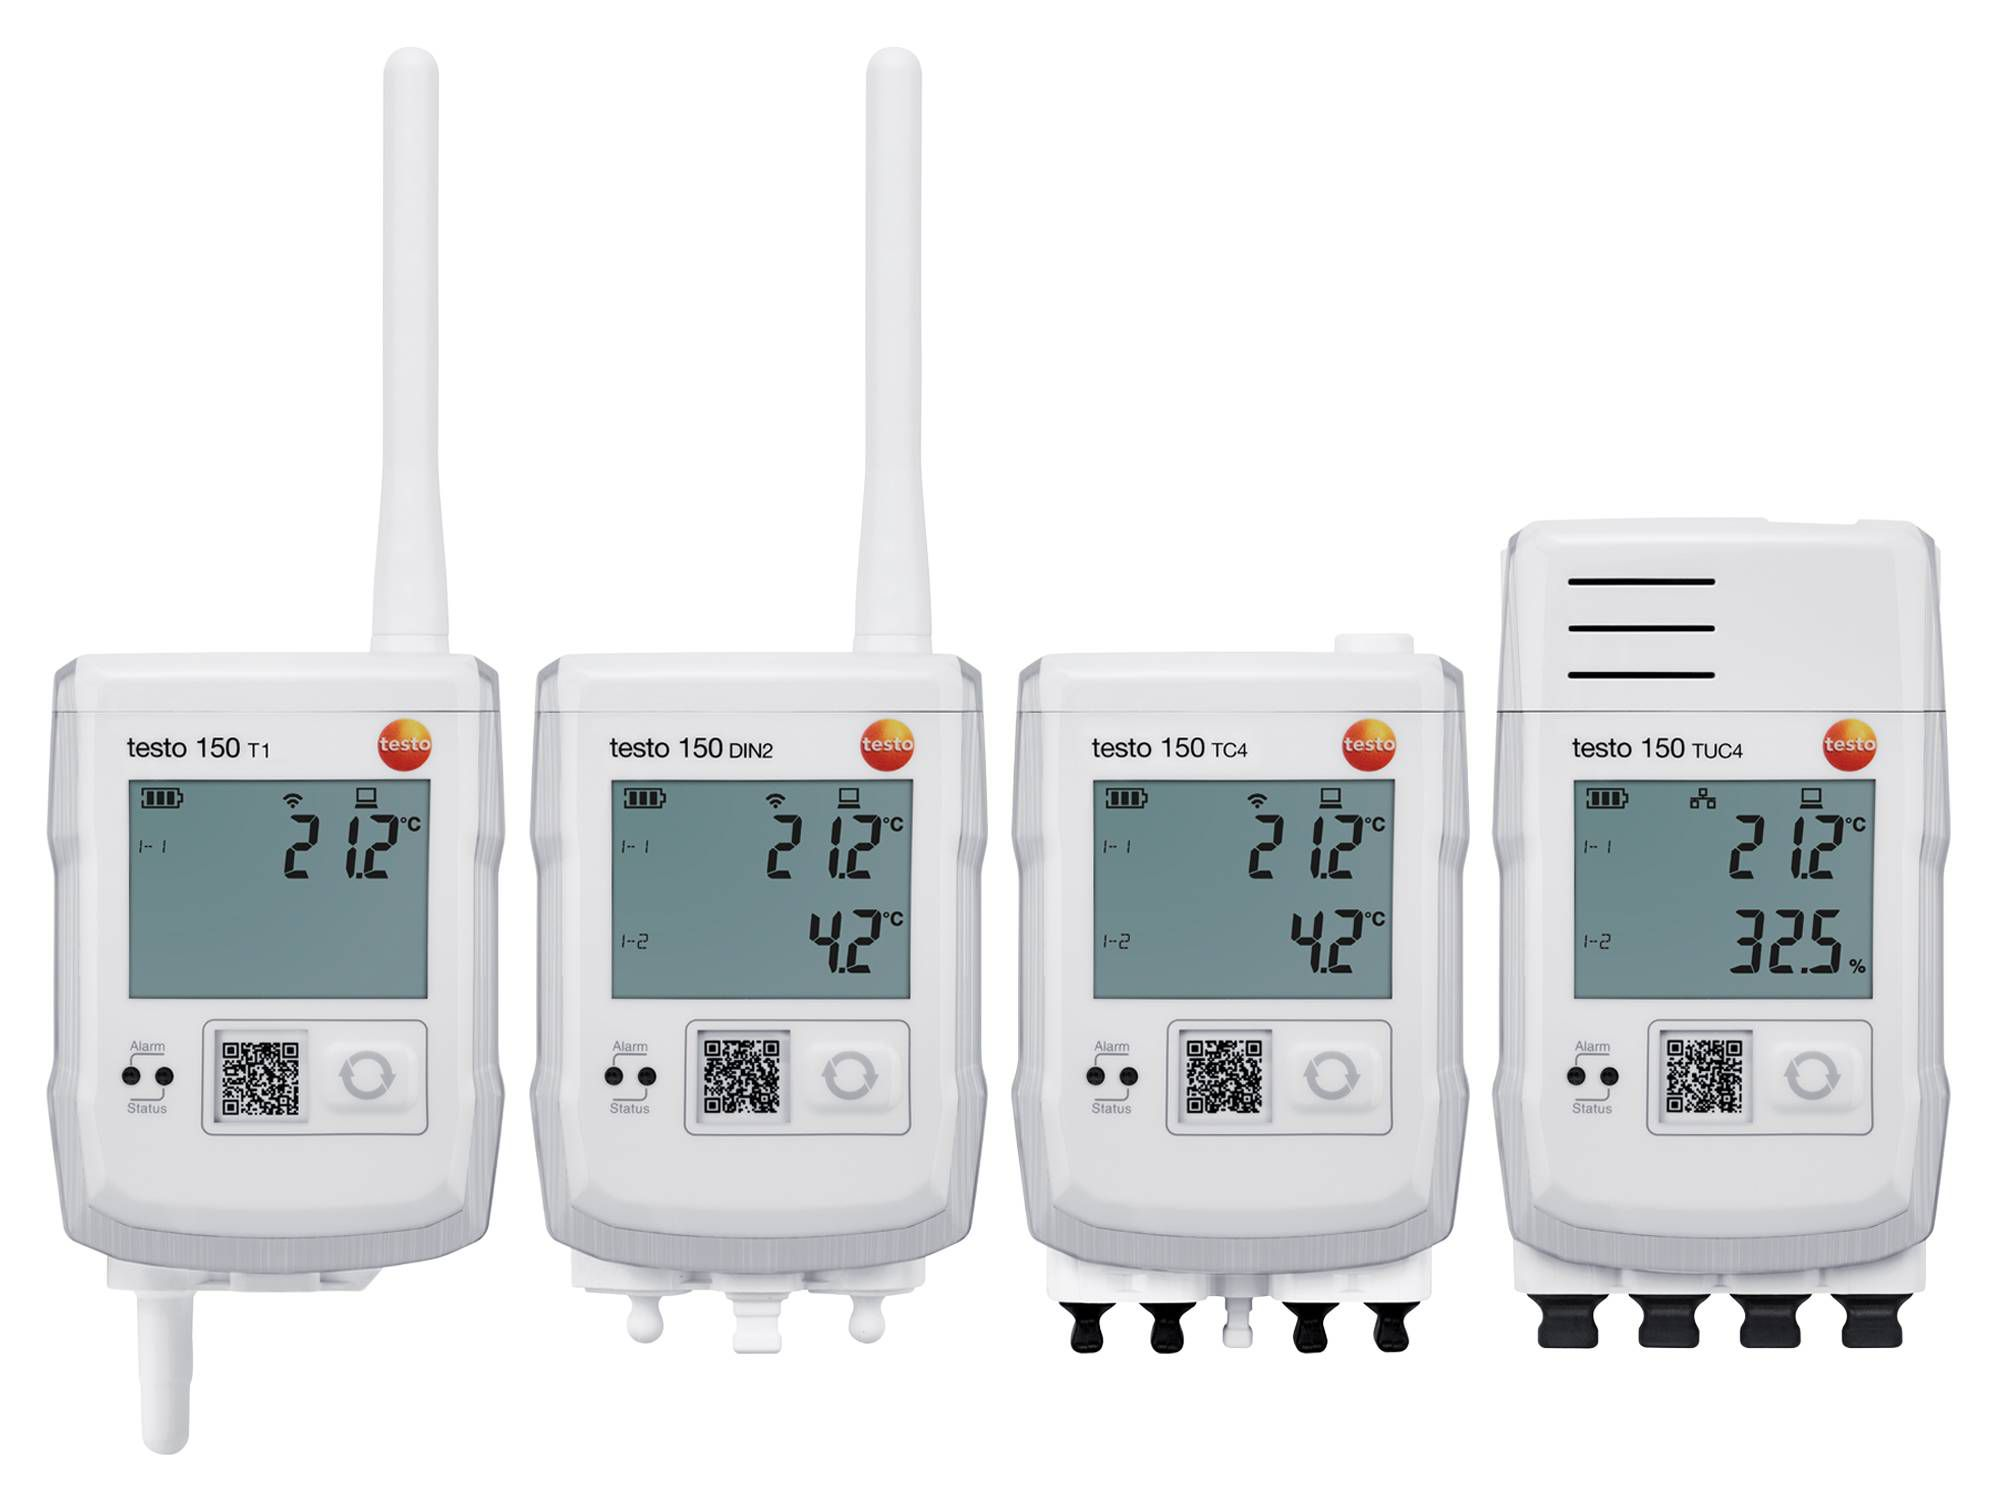 testo Saveris Pharma data loggers